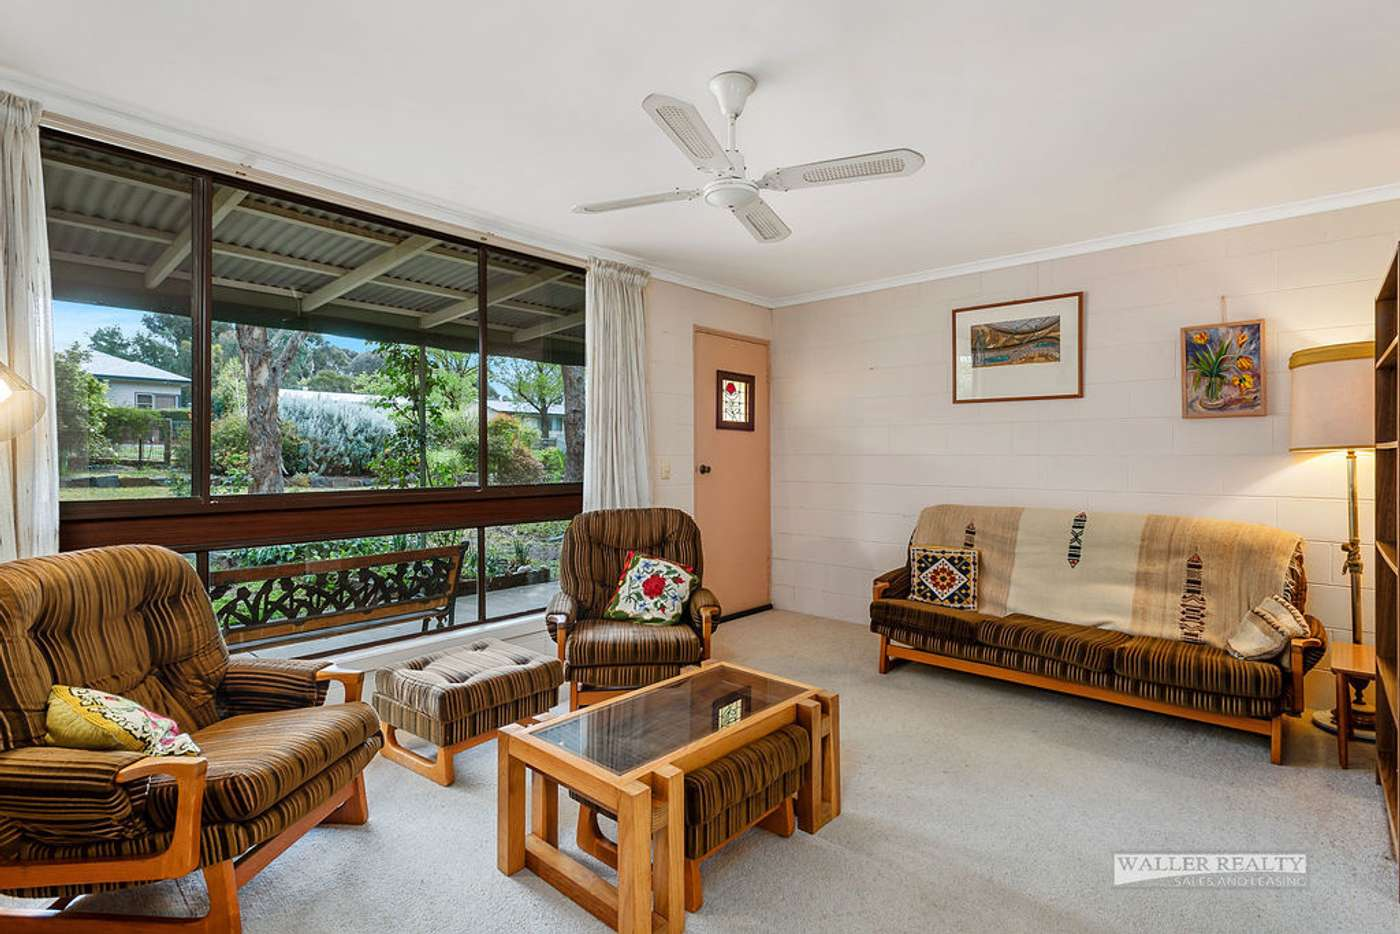 Fifth view of Homely house listing, 20 Church Street, Maldon VIC 3463